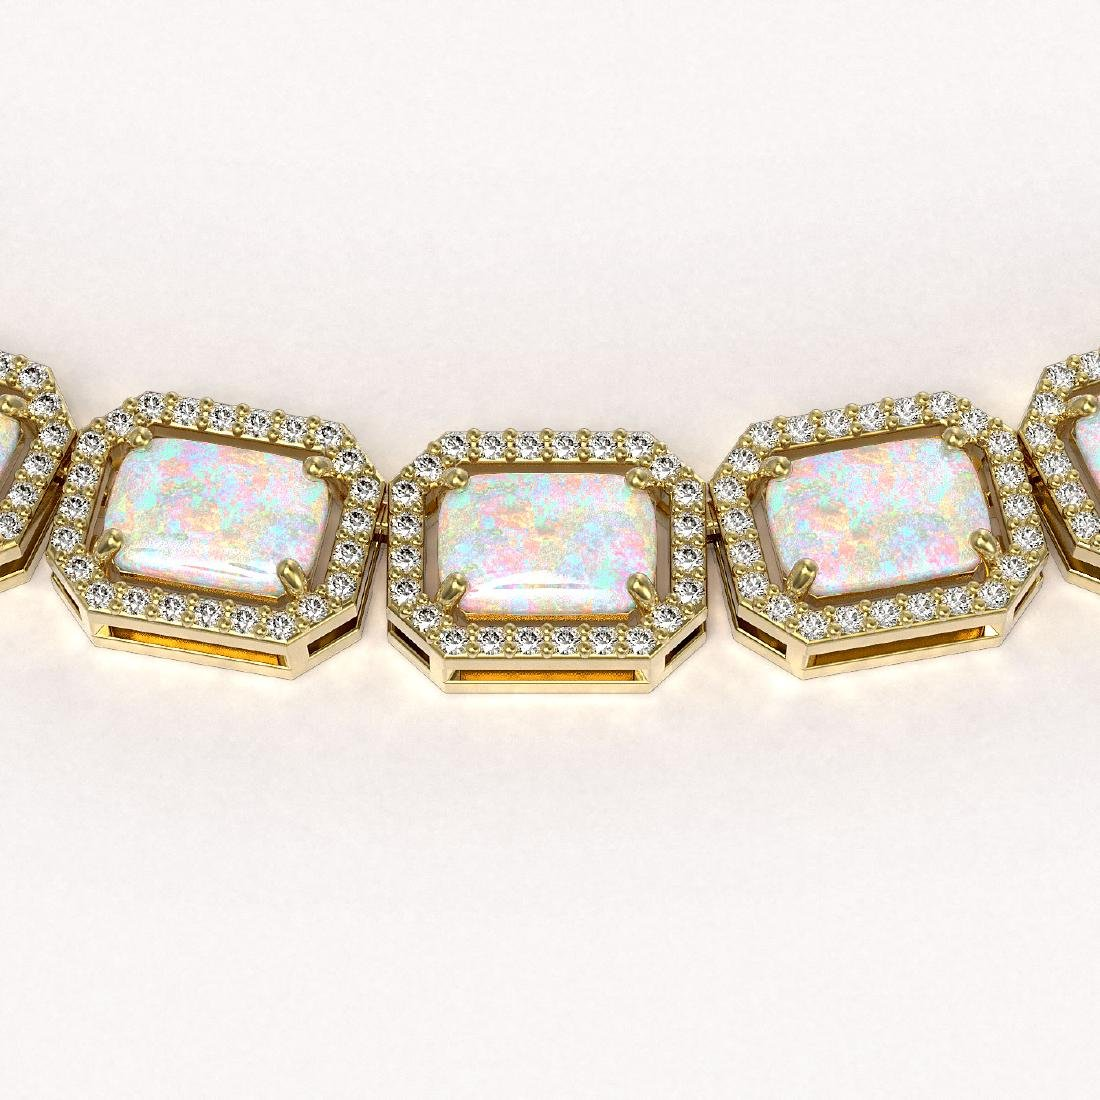 37.69 CTW Opal & Diamond Halo Necklace 10K Yellow Gold - 3